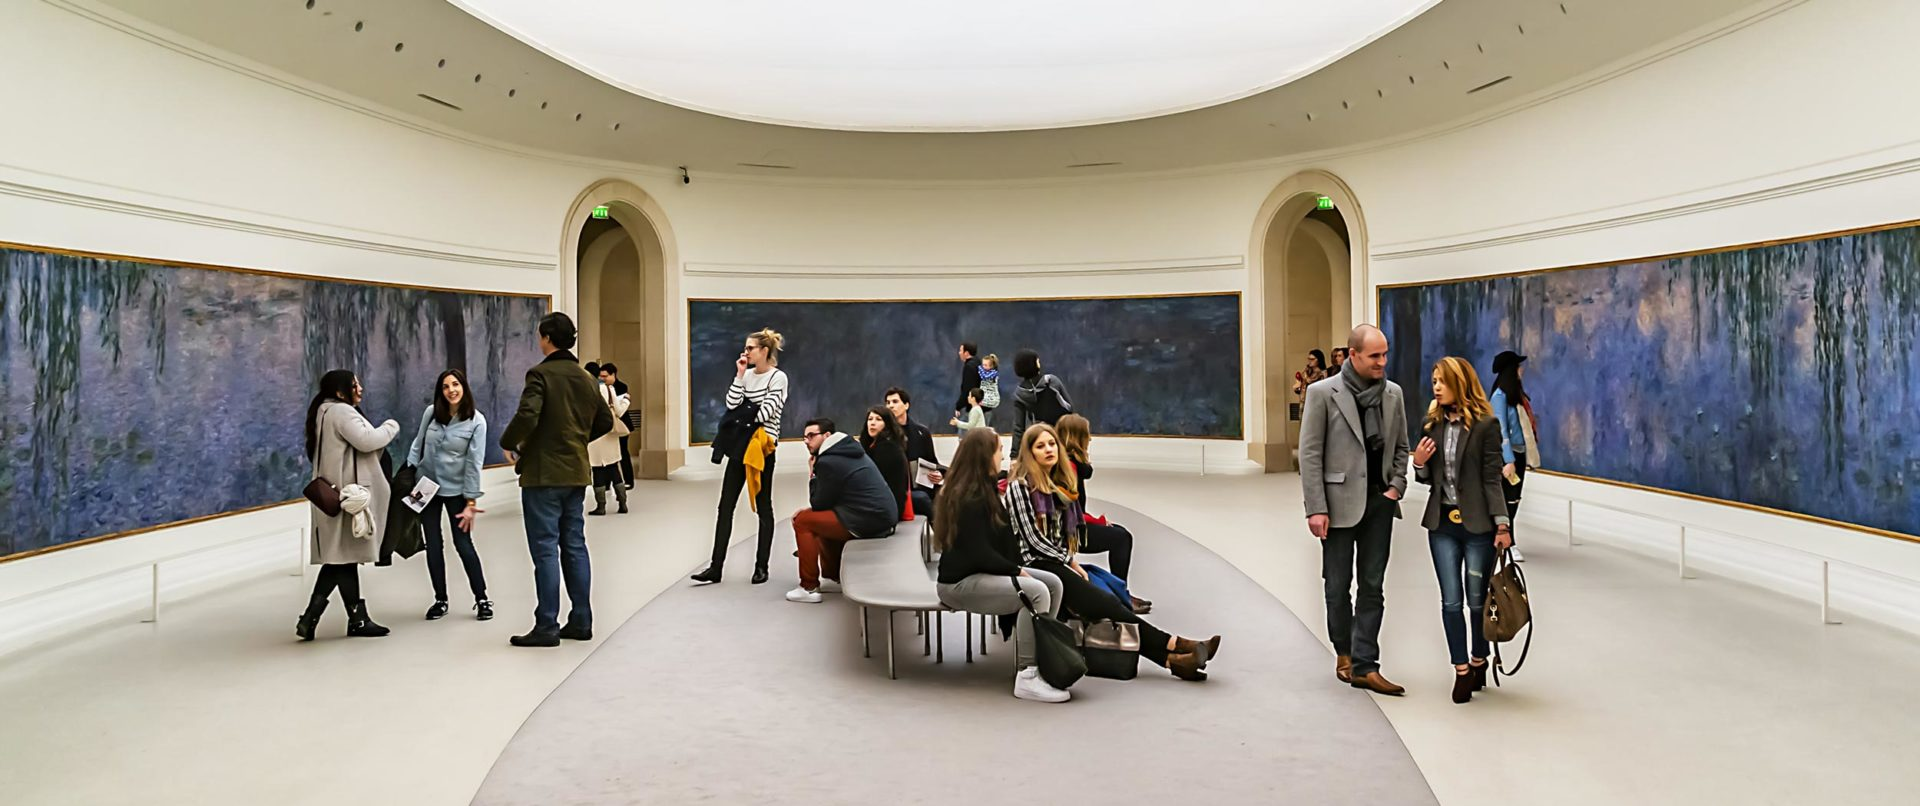 impressionism-orsay-orangerie-giverny-family-tour1